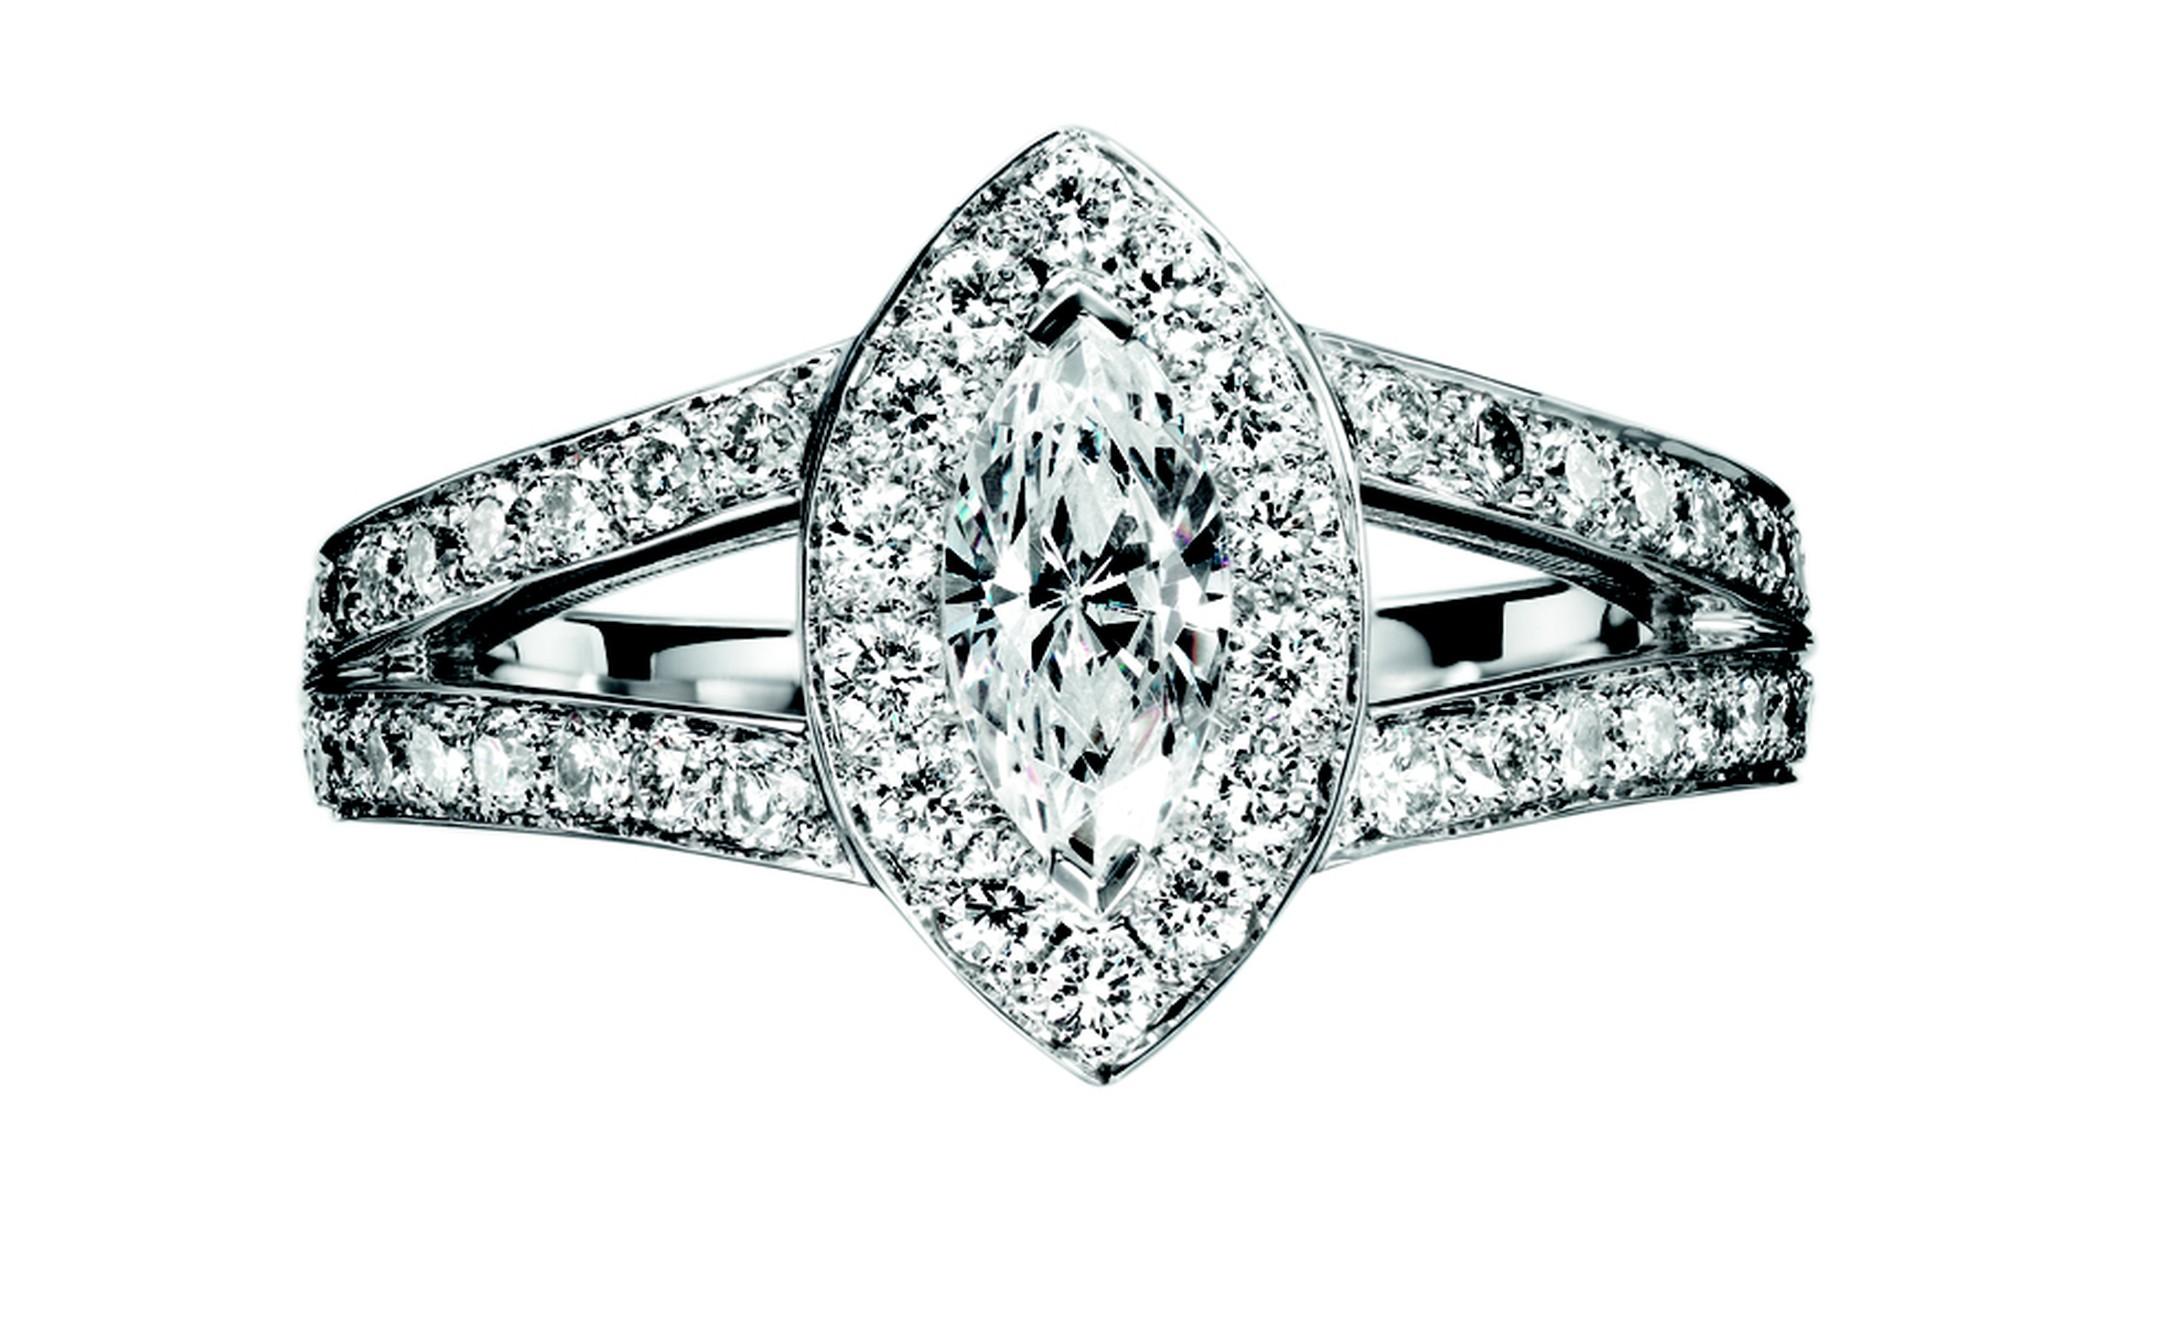 BOUCHERON, Eternal Grace Solitaire in platinum gold and diamonds. Price from £7,800